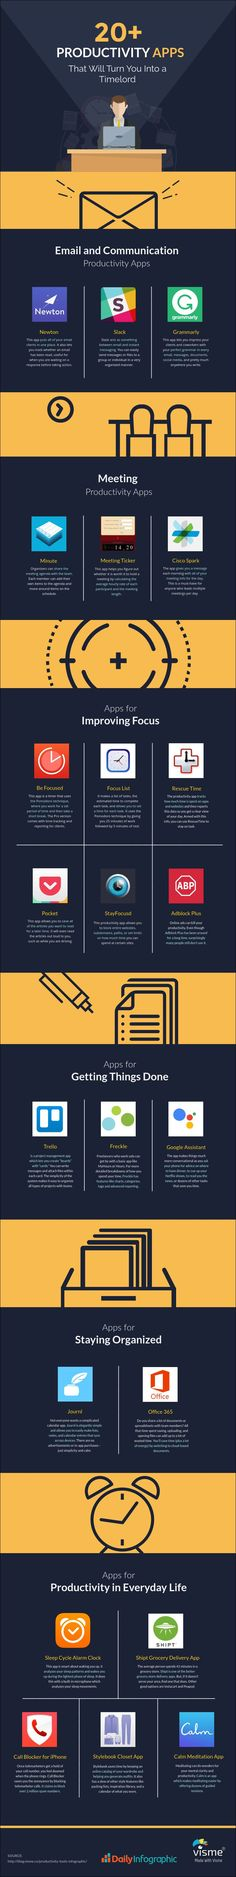 20+ #Productivity Apps That Will Give You More Time to Run Your #Business #Infographic